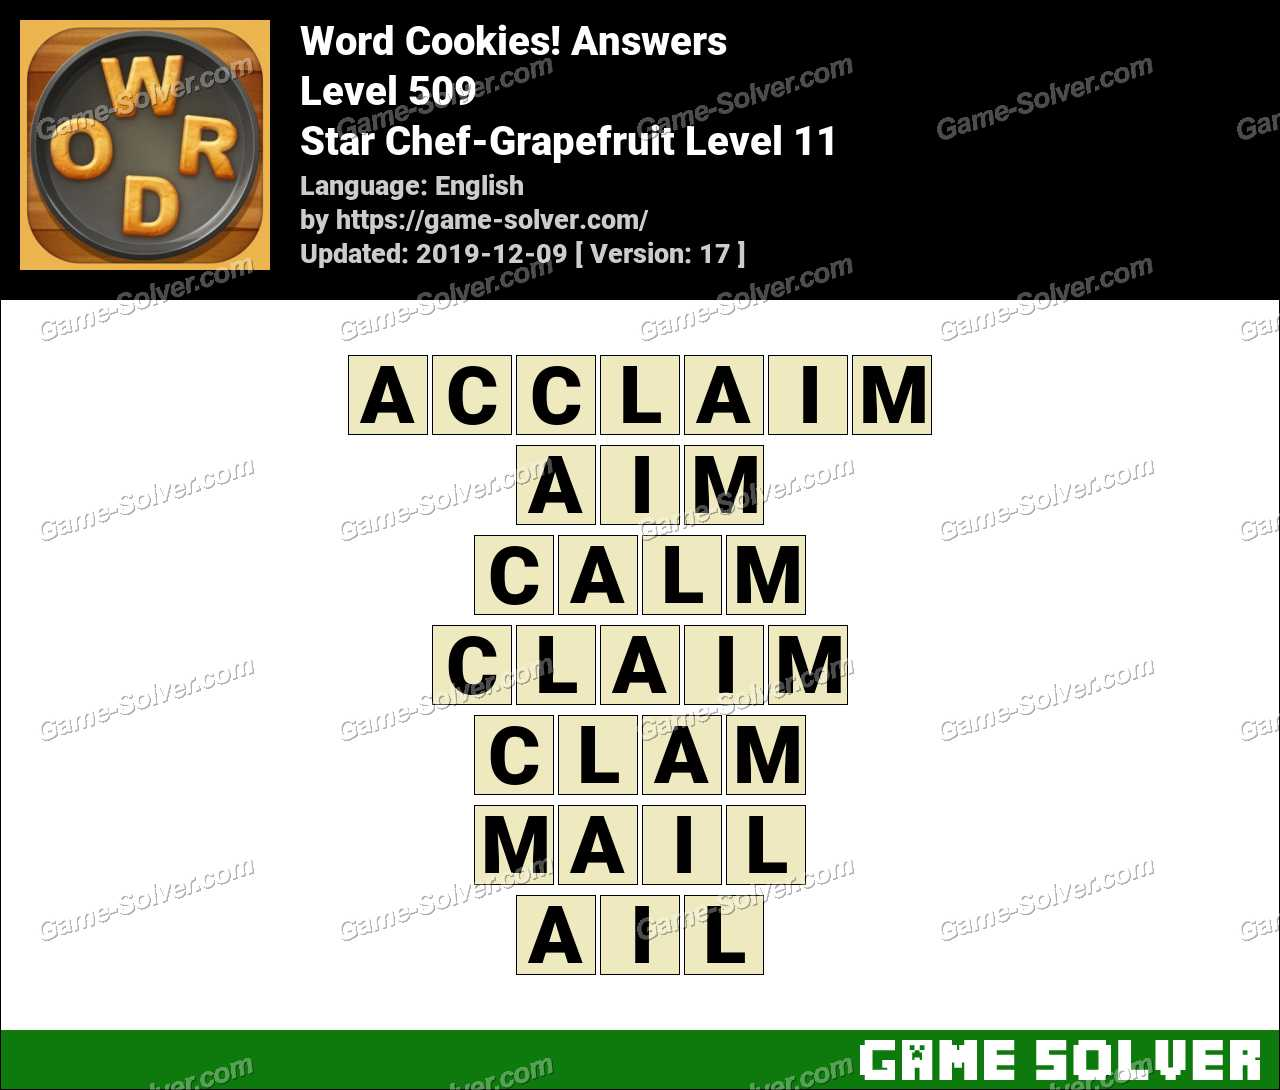 Word Cookies Star Chef-Grapefruit Level 11 Answers